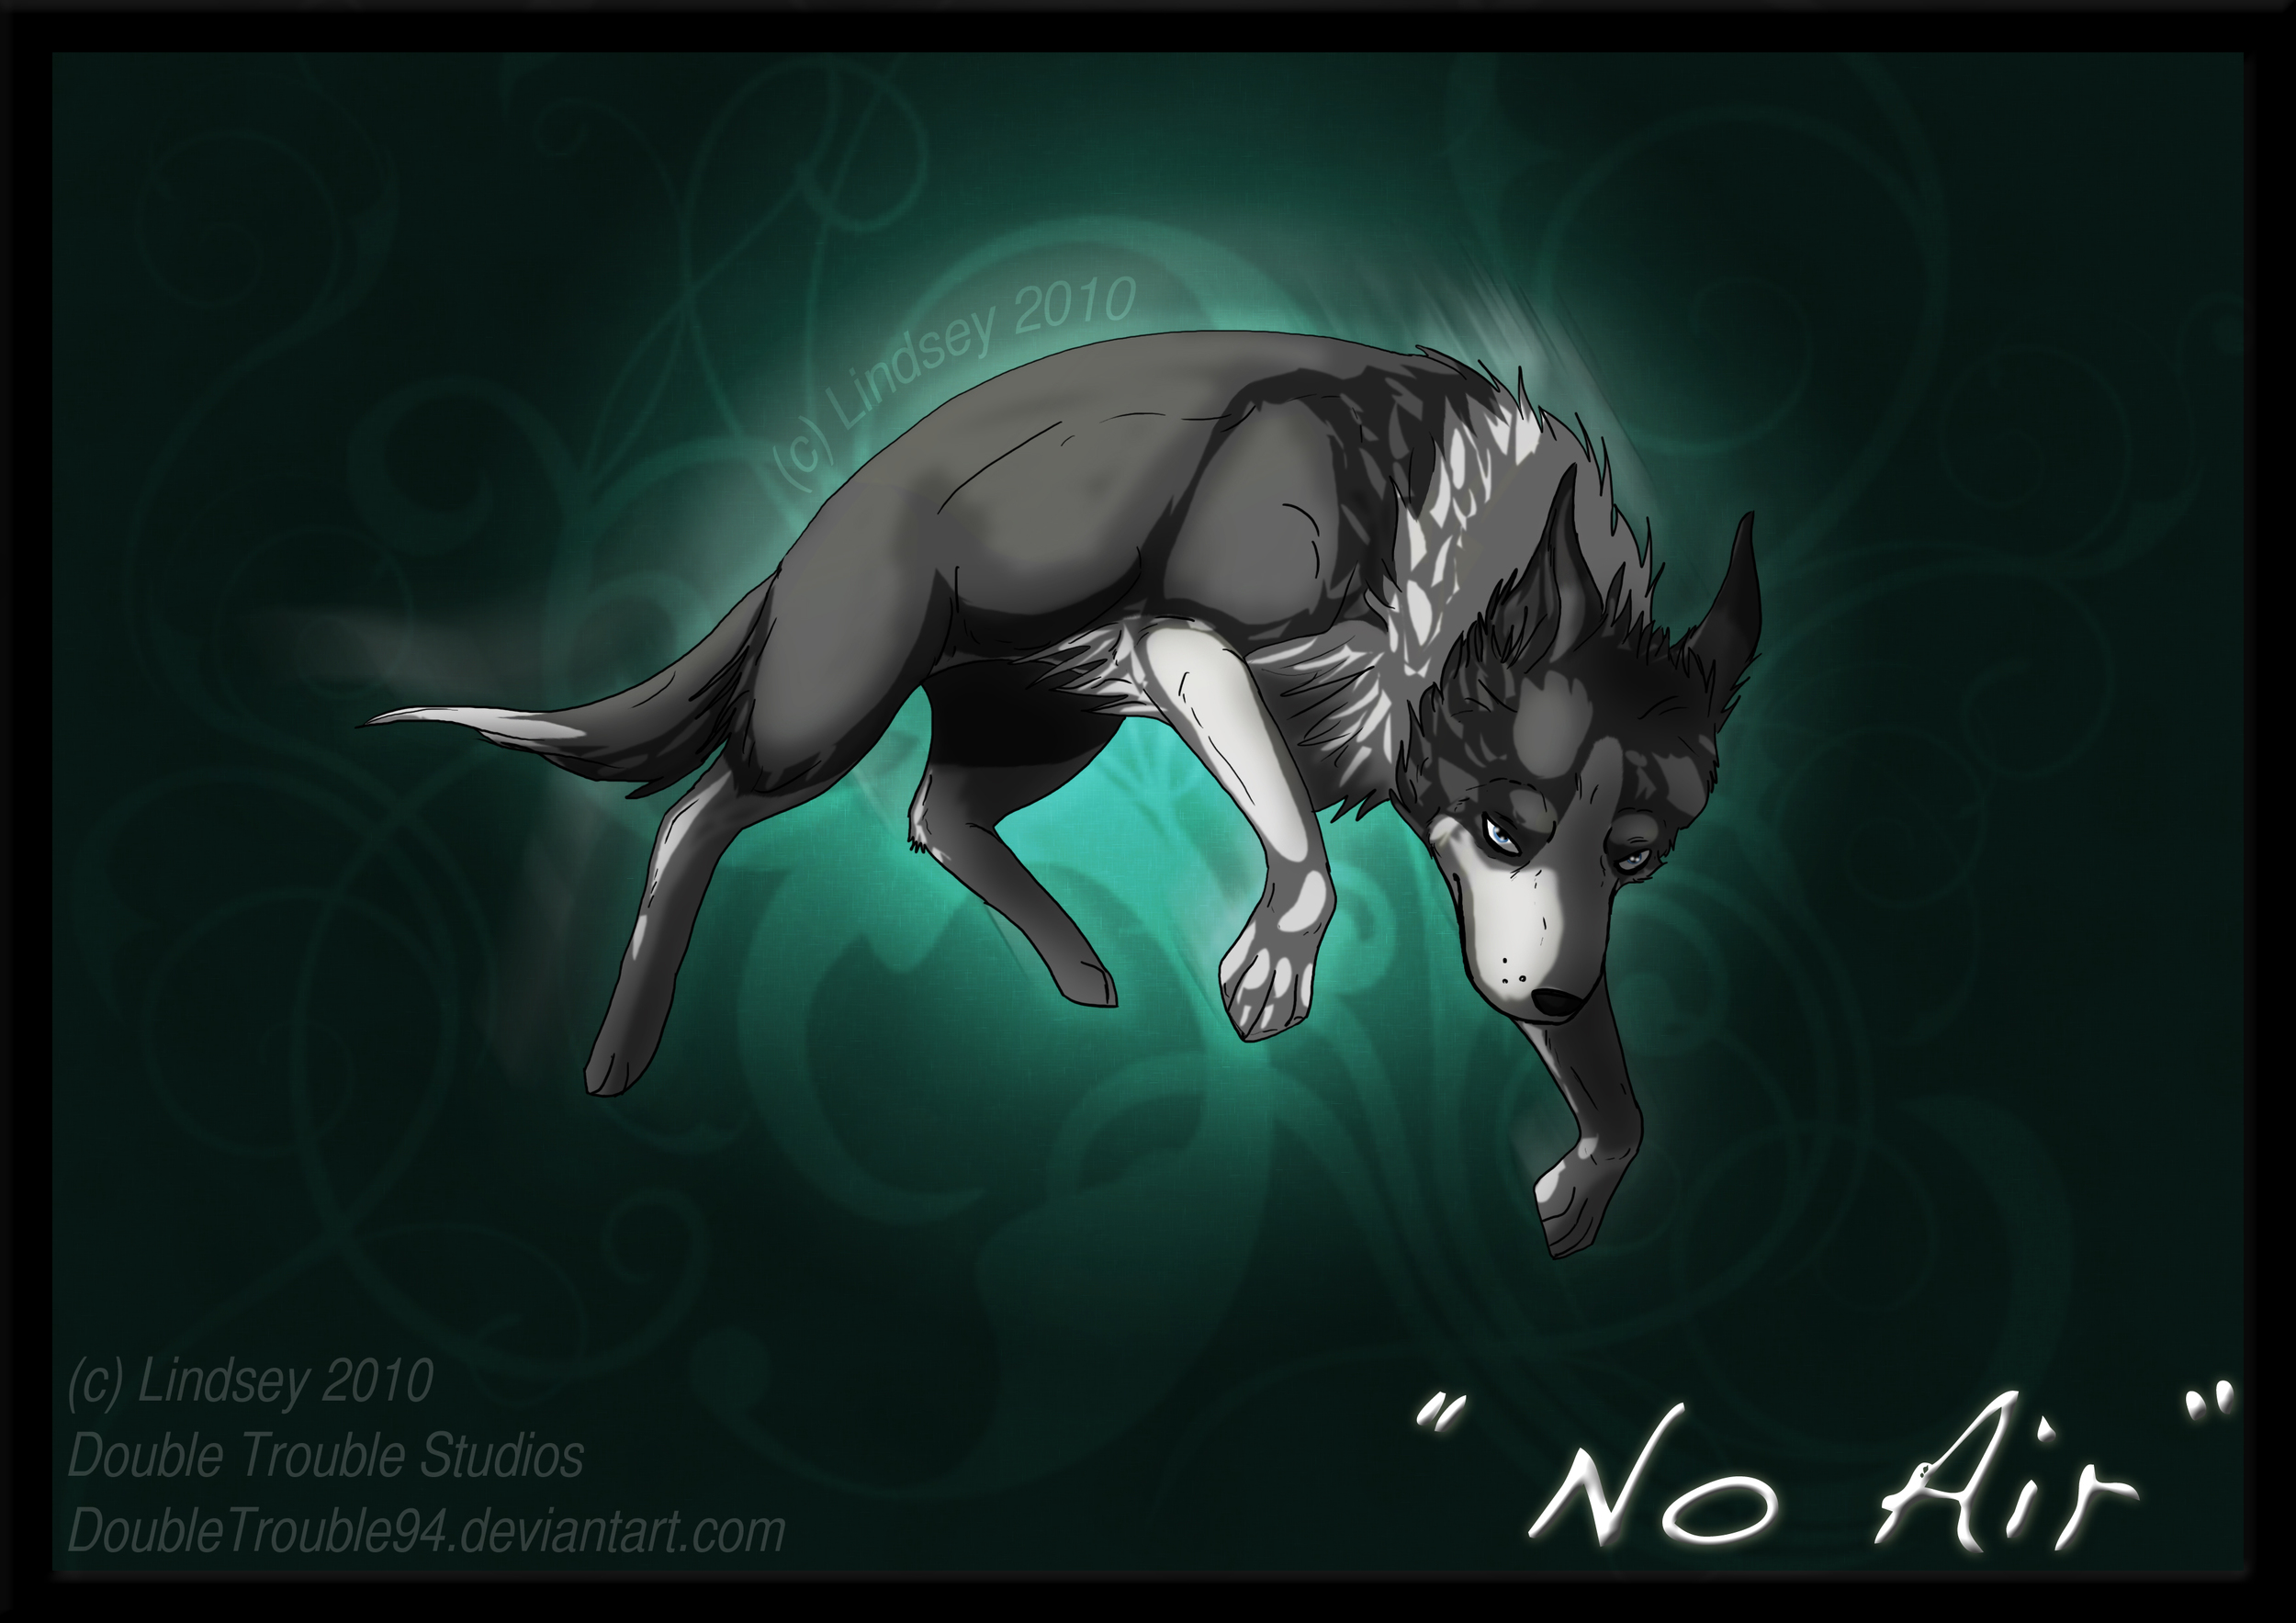 fursona_draw___no_air_by_doubletrouble94-d34pv8t.jpg